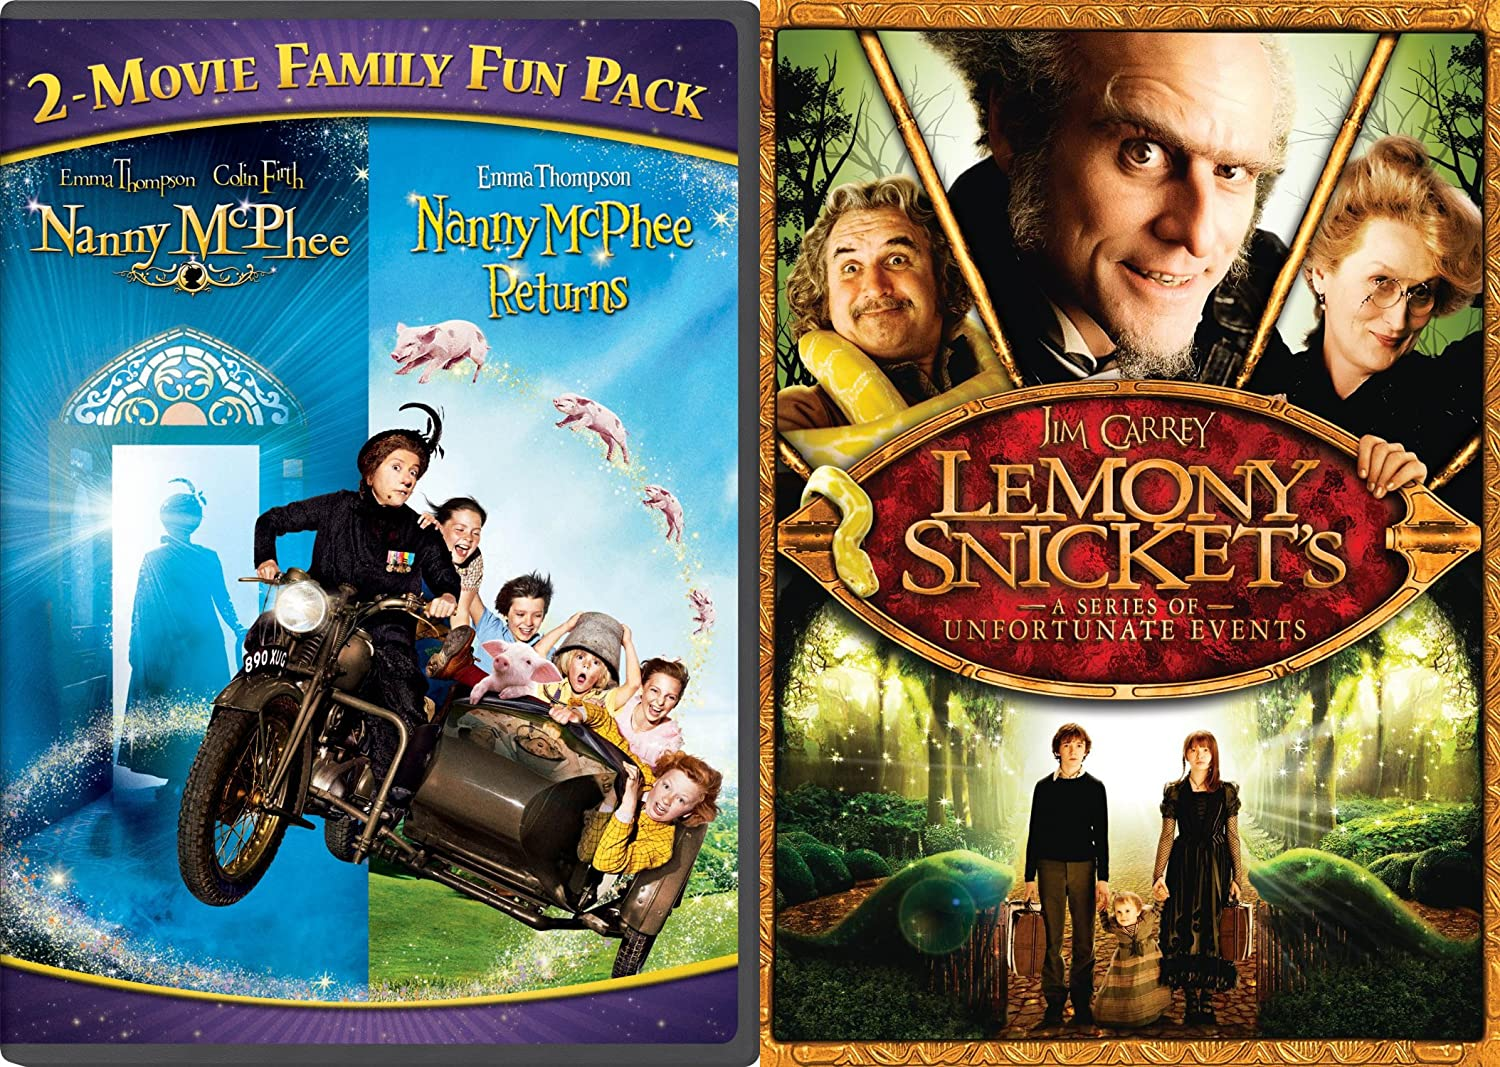 Amazon Com Nanny Mcphee 2 Movie Family Fun Pack Lemony Snicket S A Series Of Unfortunate Events 2 Dvd Nanny Mcphee Returns Part 2 Fantasy Set Family Movies Emma Thompson Colin Firth Maggie Gyllenhaal